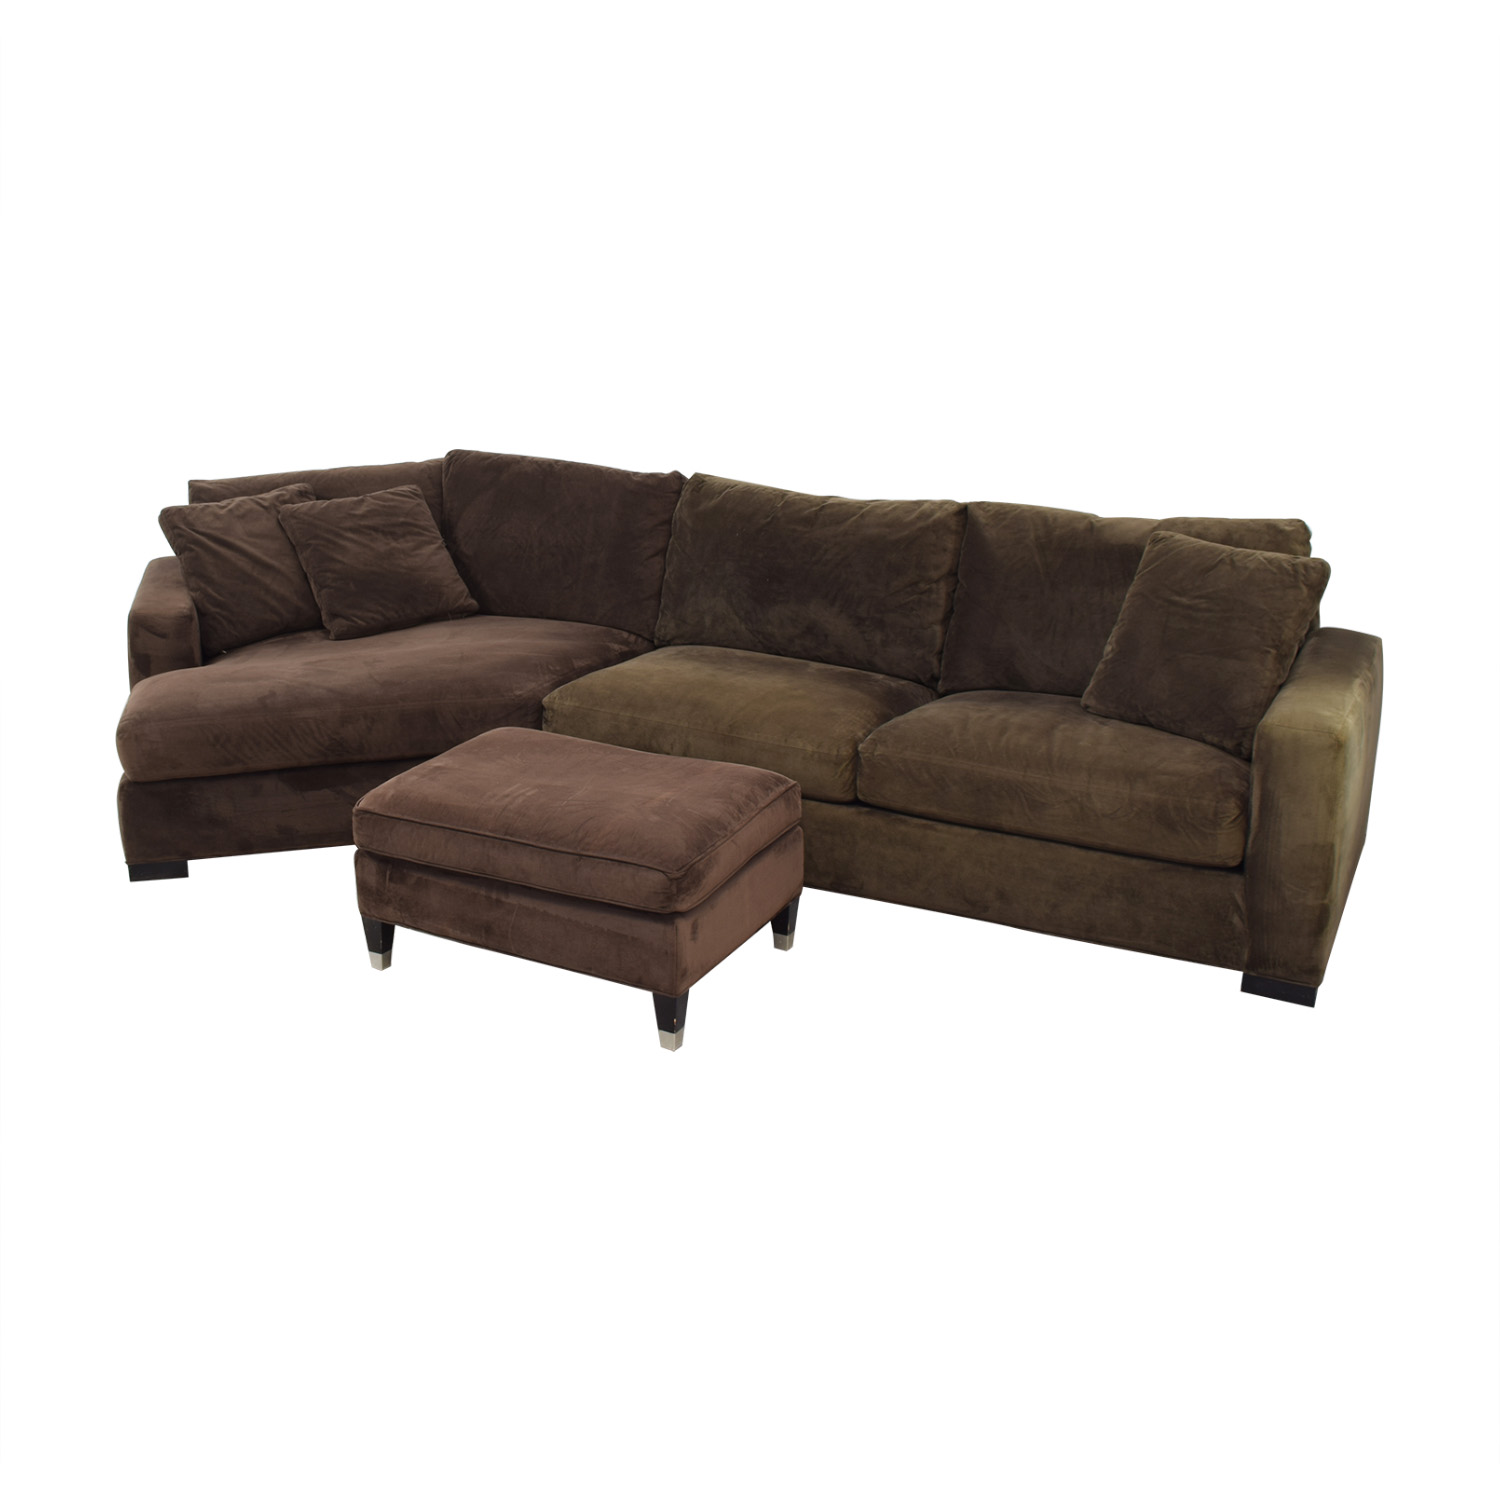 Room & Board Room & Board Metro Custom Sectional second hand